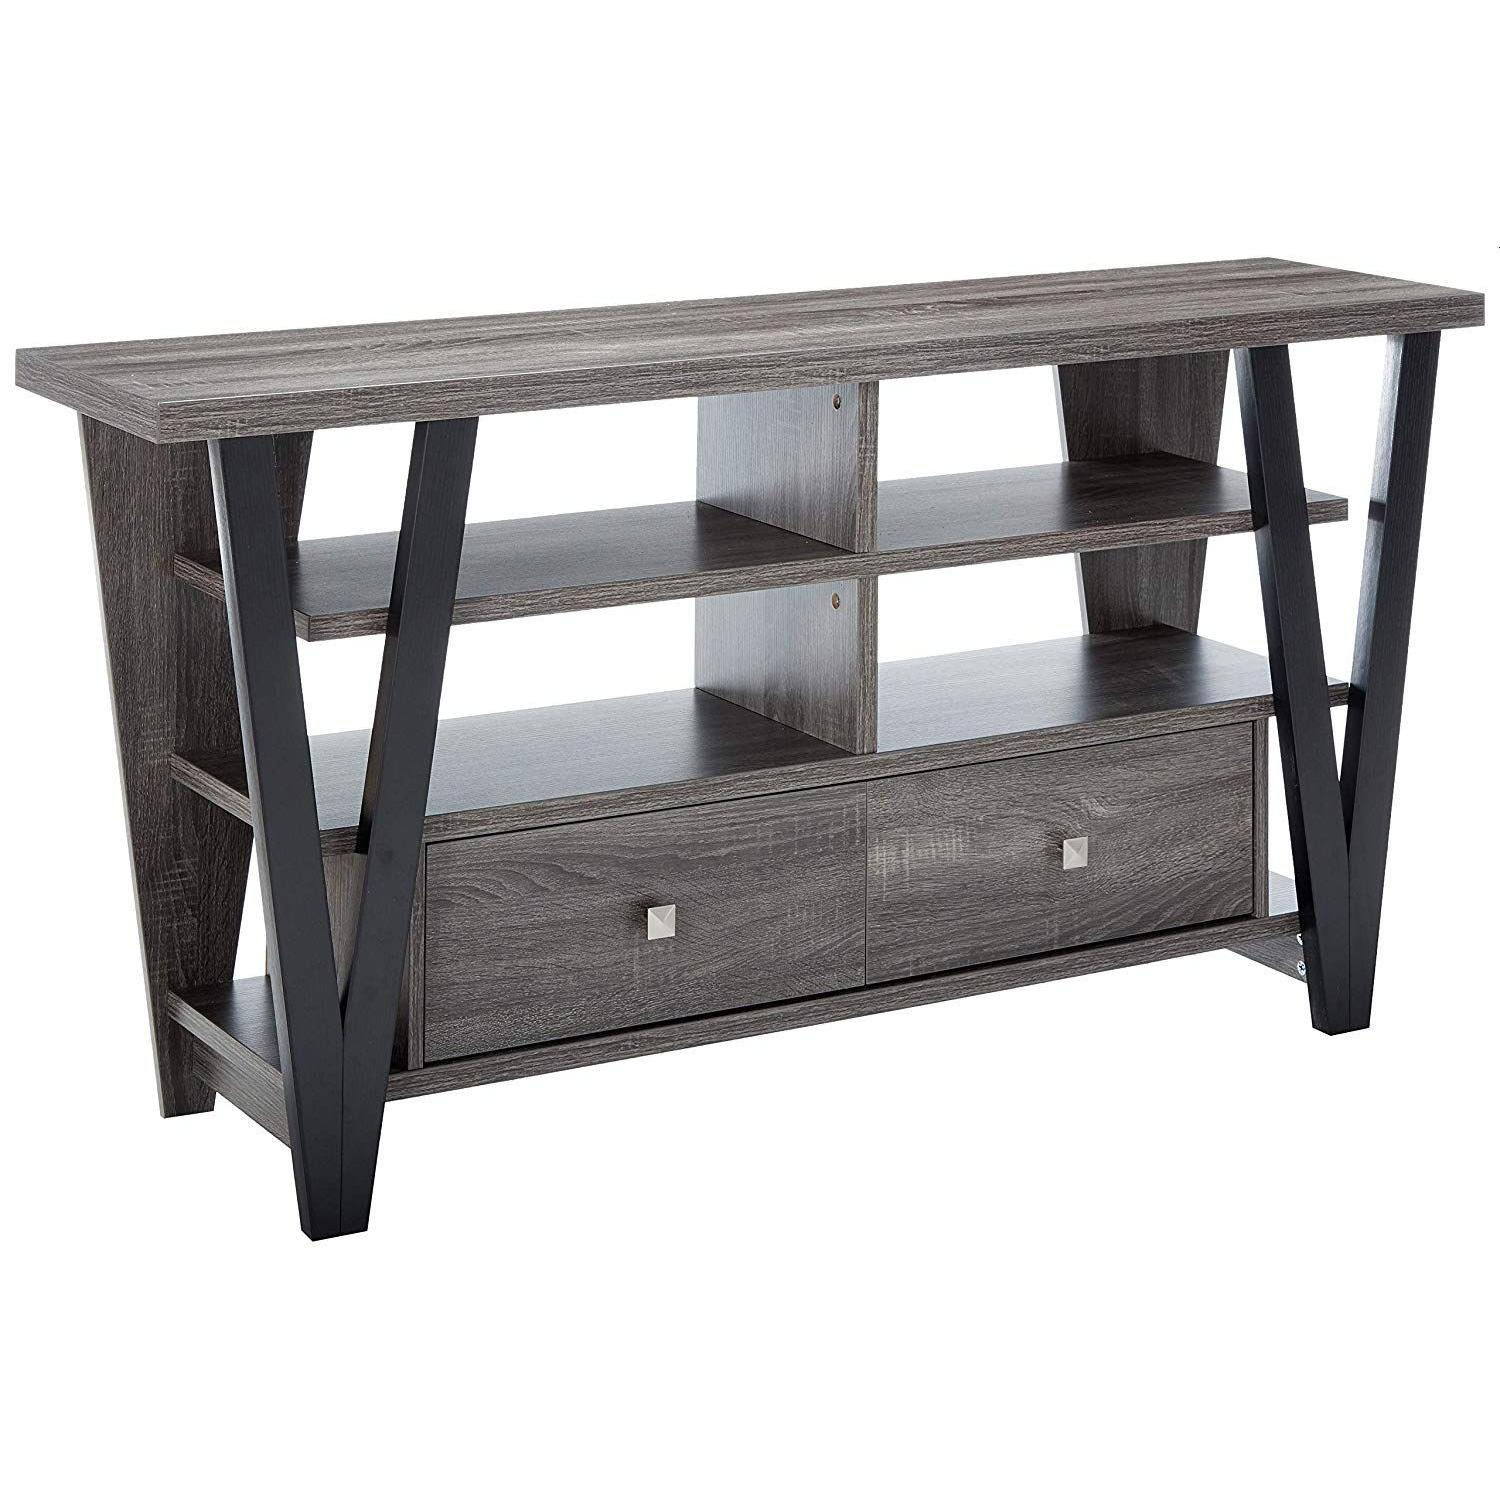 Glam Style TV Console w/ Mirror Accent - image-6